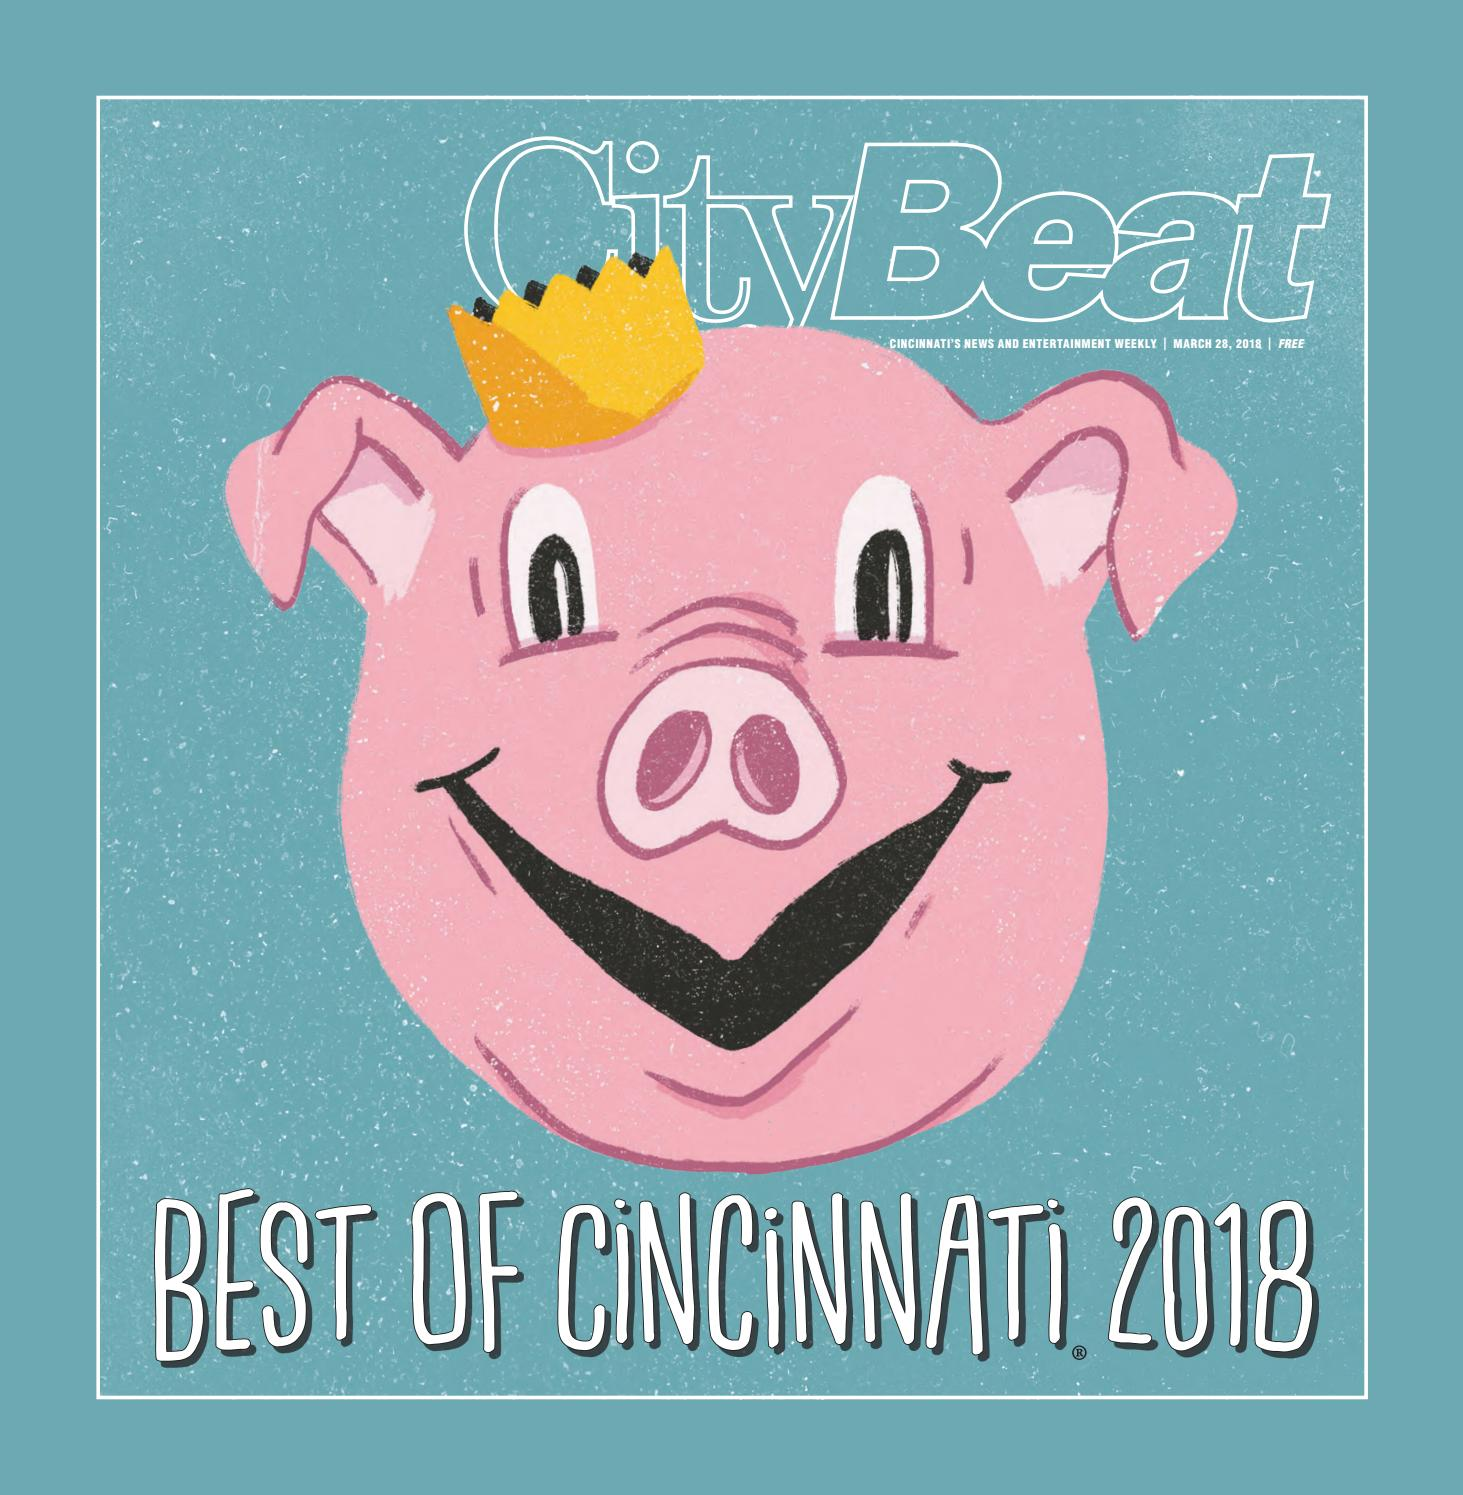 reputable site 16375 9e1de Best of Cincinnati® 2018 by Cincinnati CityBeat - issuu